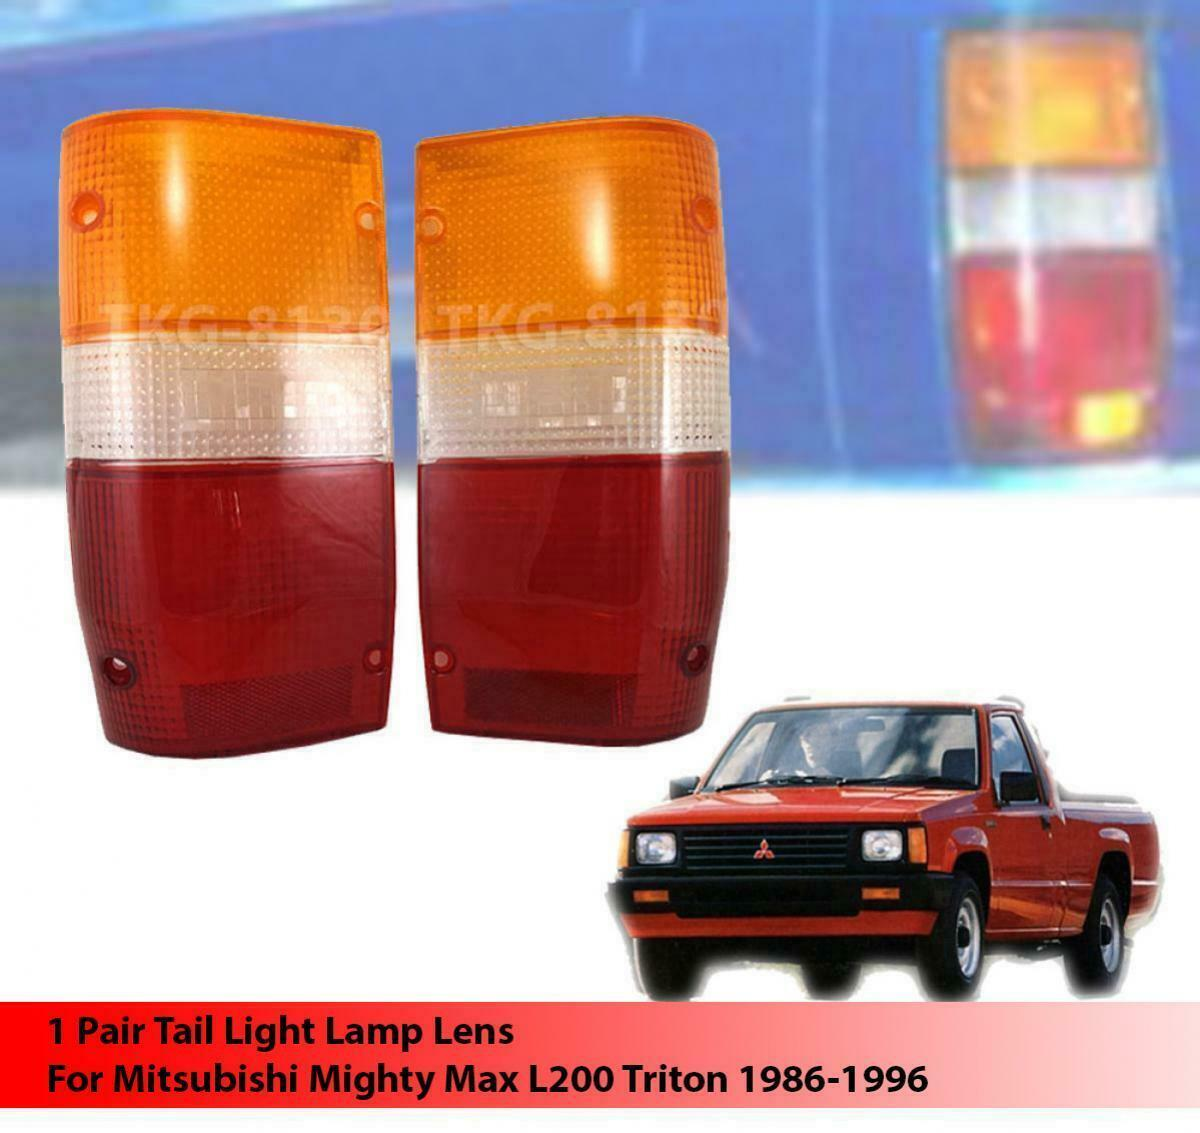 Primary image for REAR TAIL LIGHT LENS STANDARD FOR MITSUBISHI L200 Cyclone Mighty Max 1986 - 1994